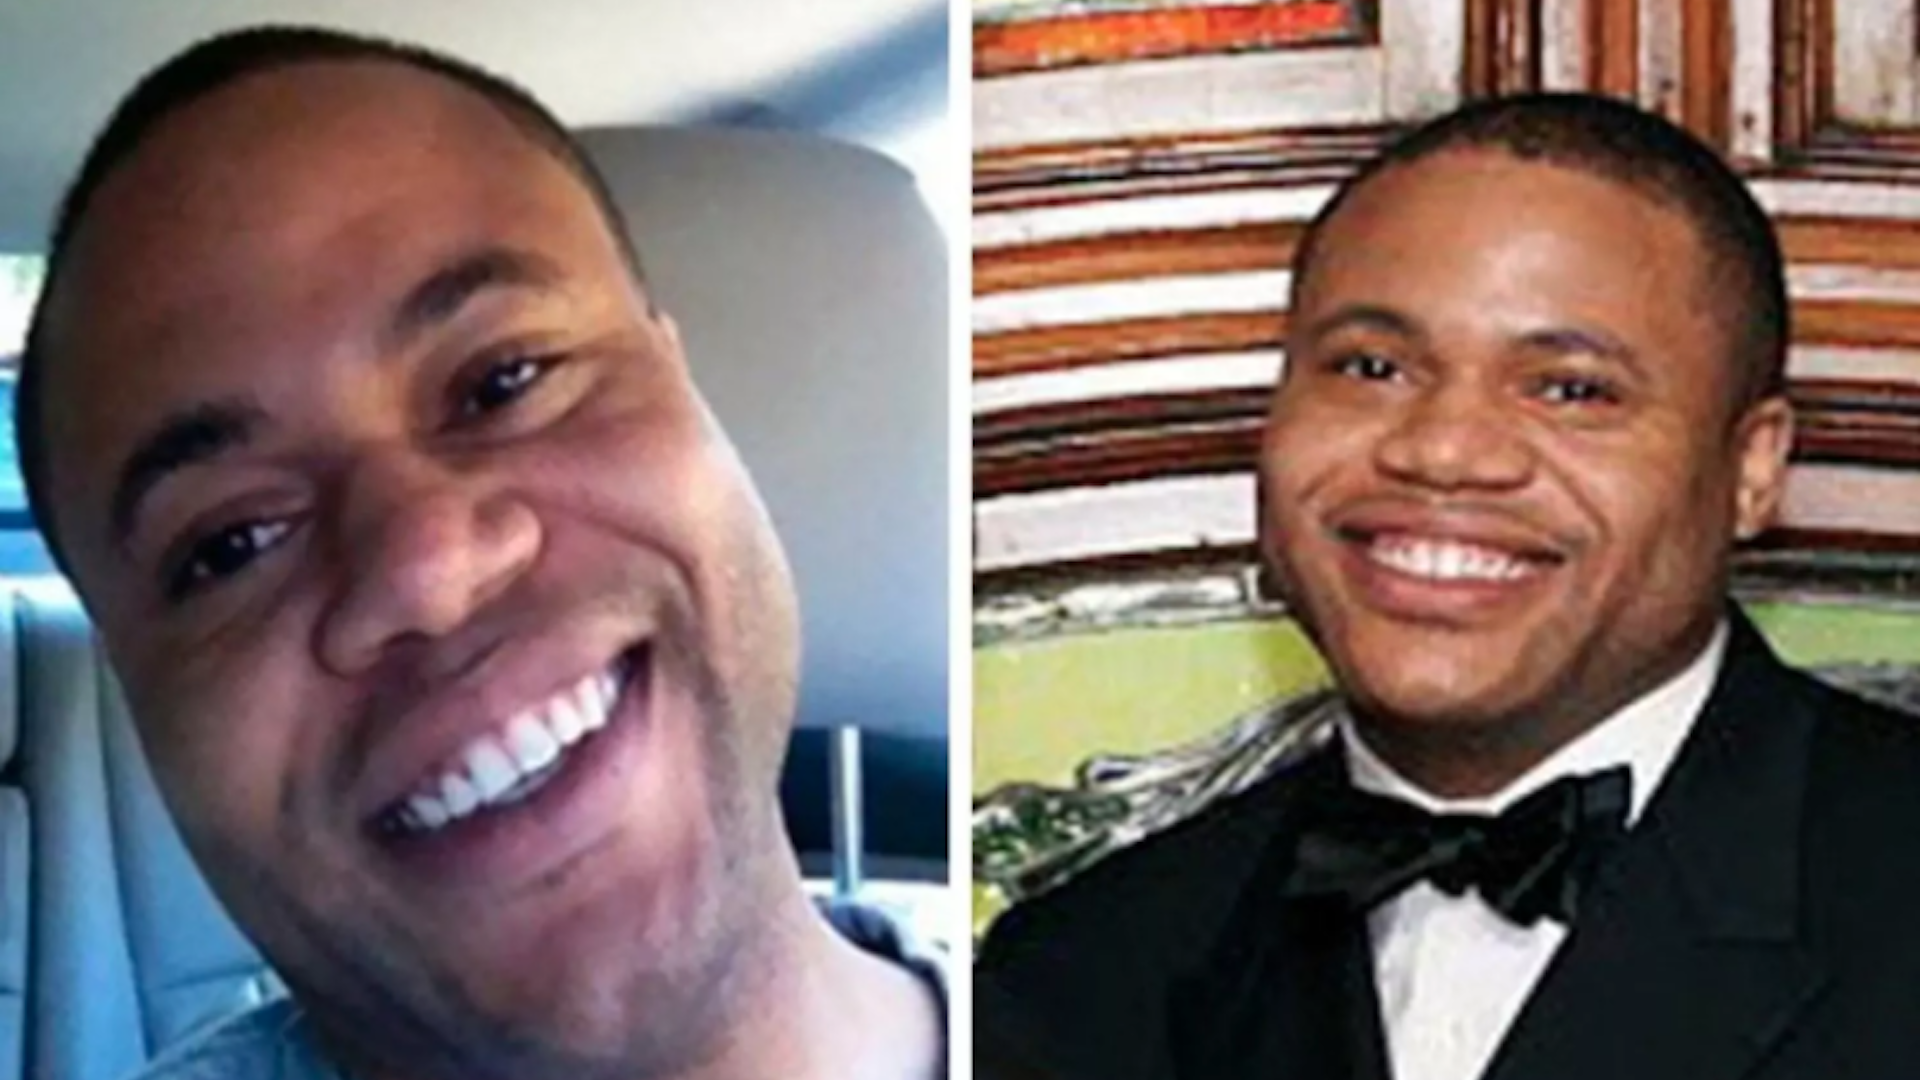 Family of missing CDC researcher offers $10,000 reward for information on  disappearance